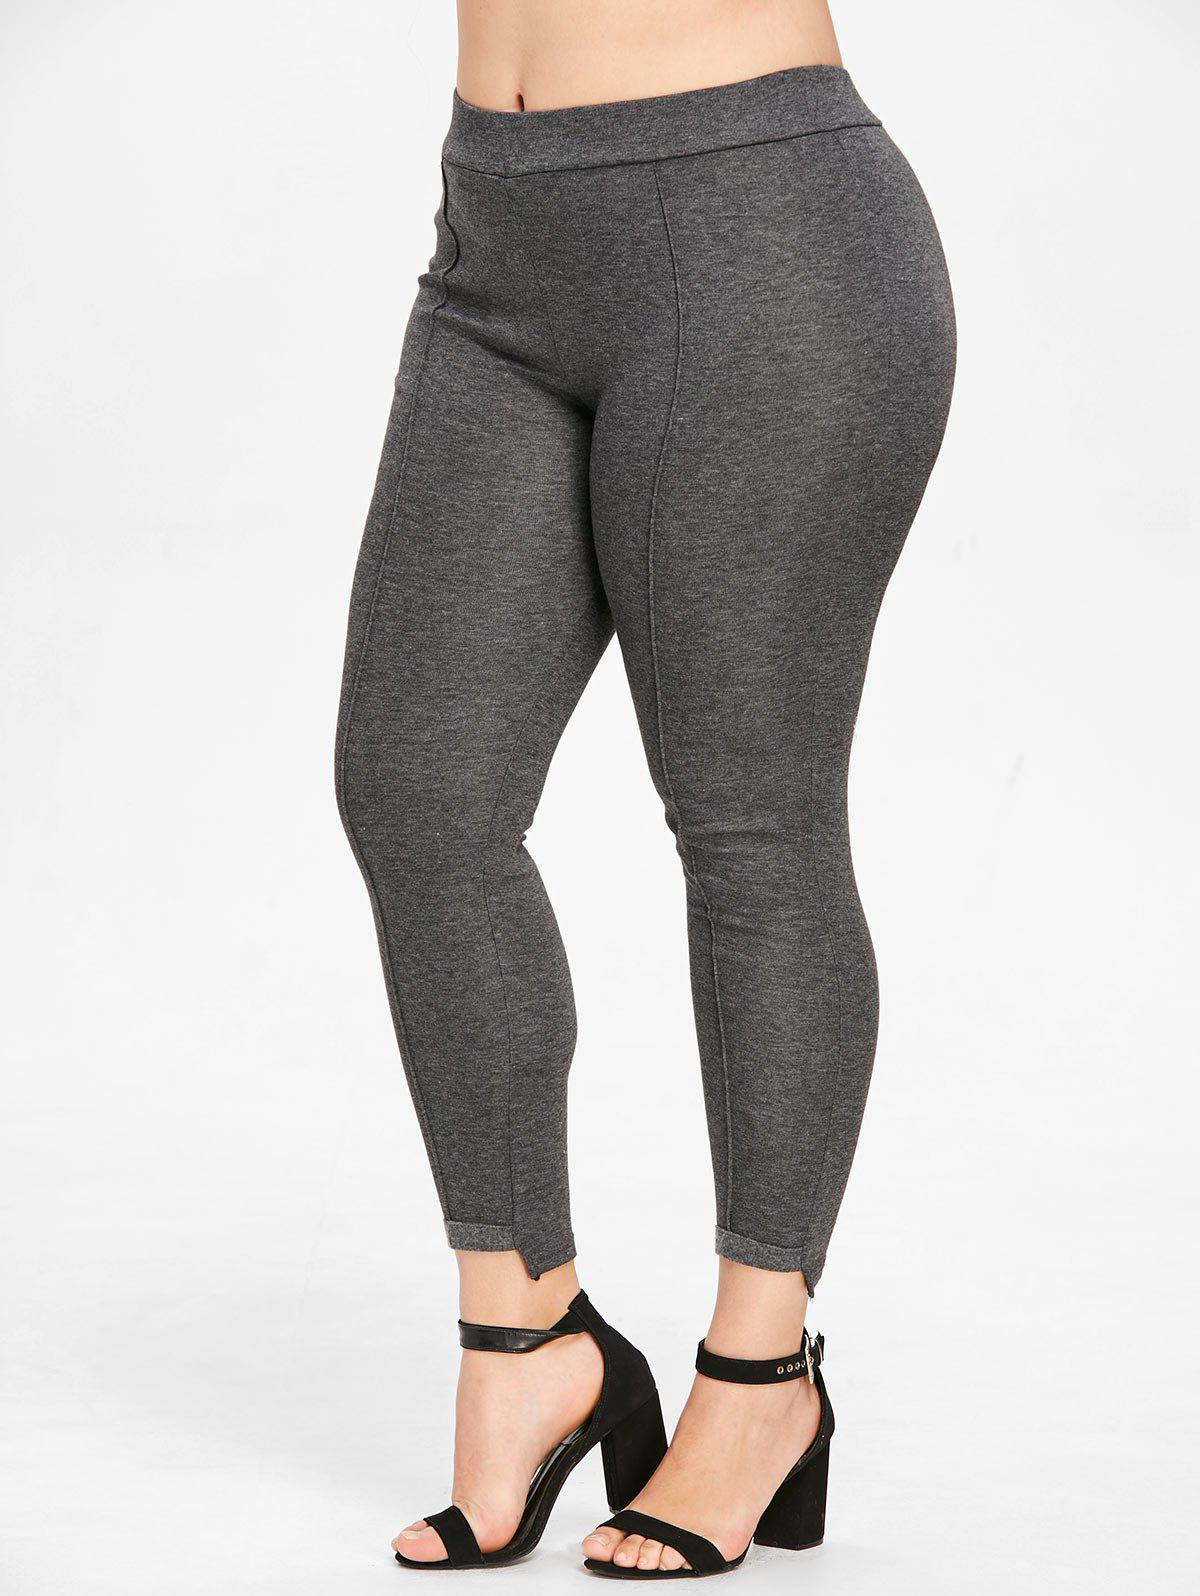 Latest Elastic Waist Plus Size Leggings